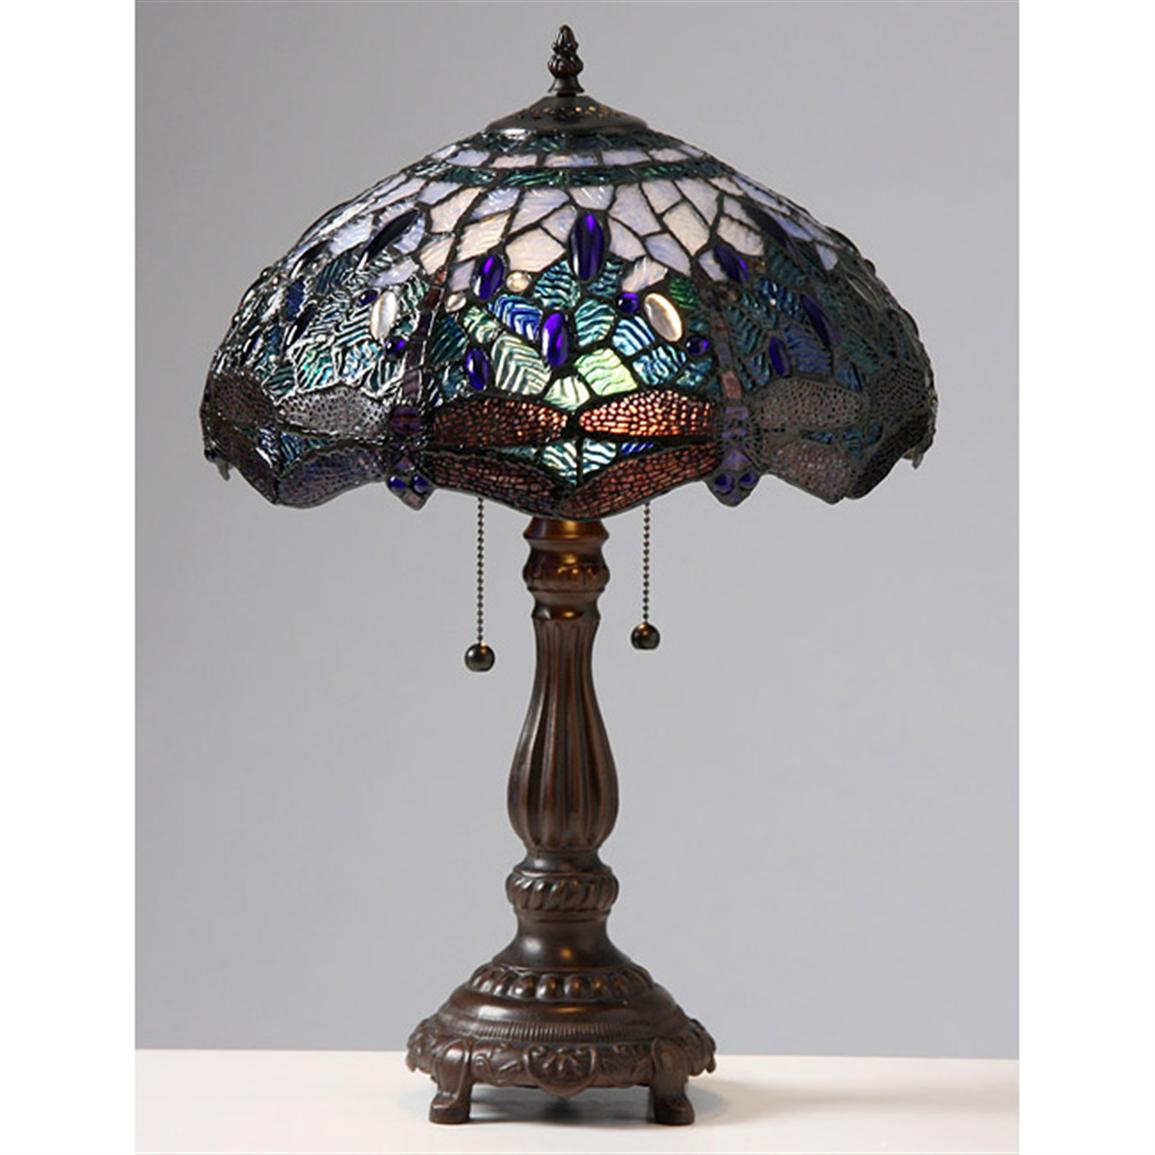 antique tiffany dragonfly floor lamp lamps oriental lily stained for exciting dale table roadshow furnishings accent brass living room ikea sets handmade runner rhinestone iron